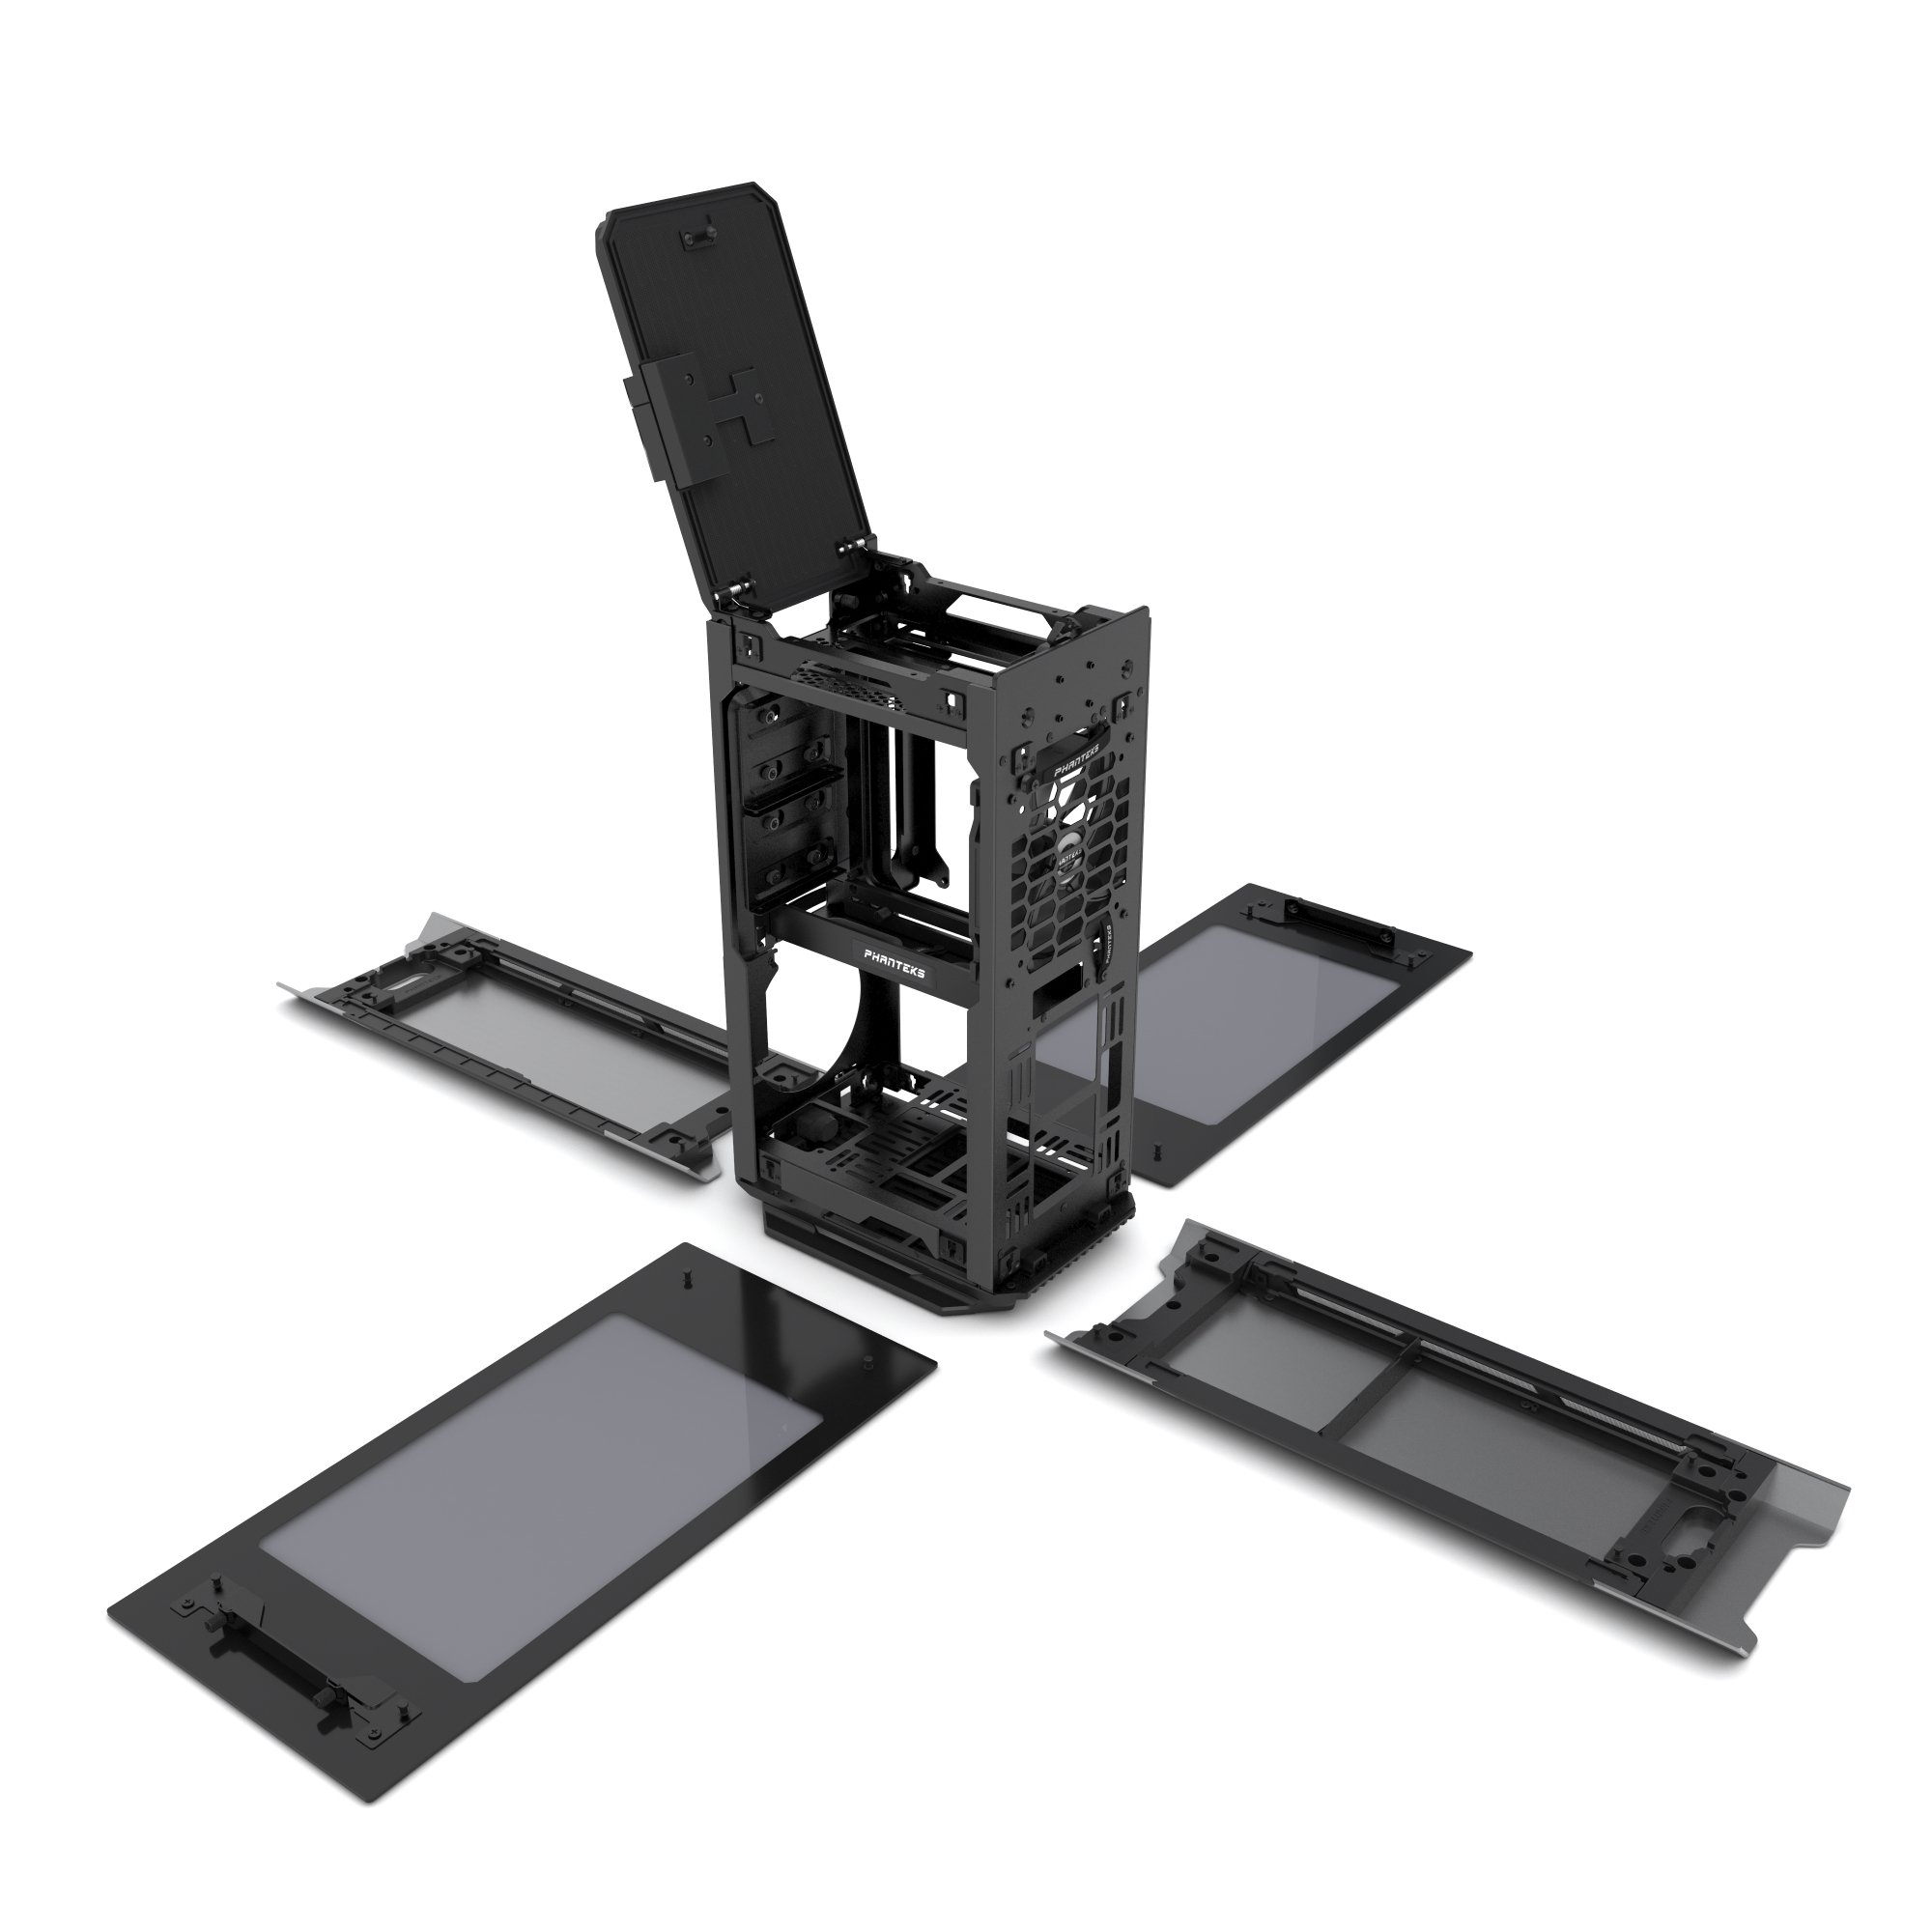 Phanteks PH-ES217E_AG EVOLV SHIFT Mini ITX Dual Tempered Glass for AIO water cooling Anthracite Gray Cases by Phanteks (Image #12)